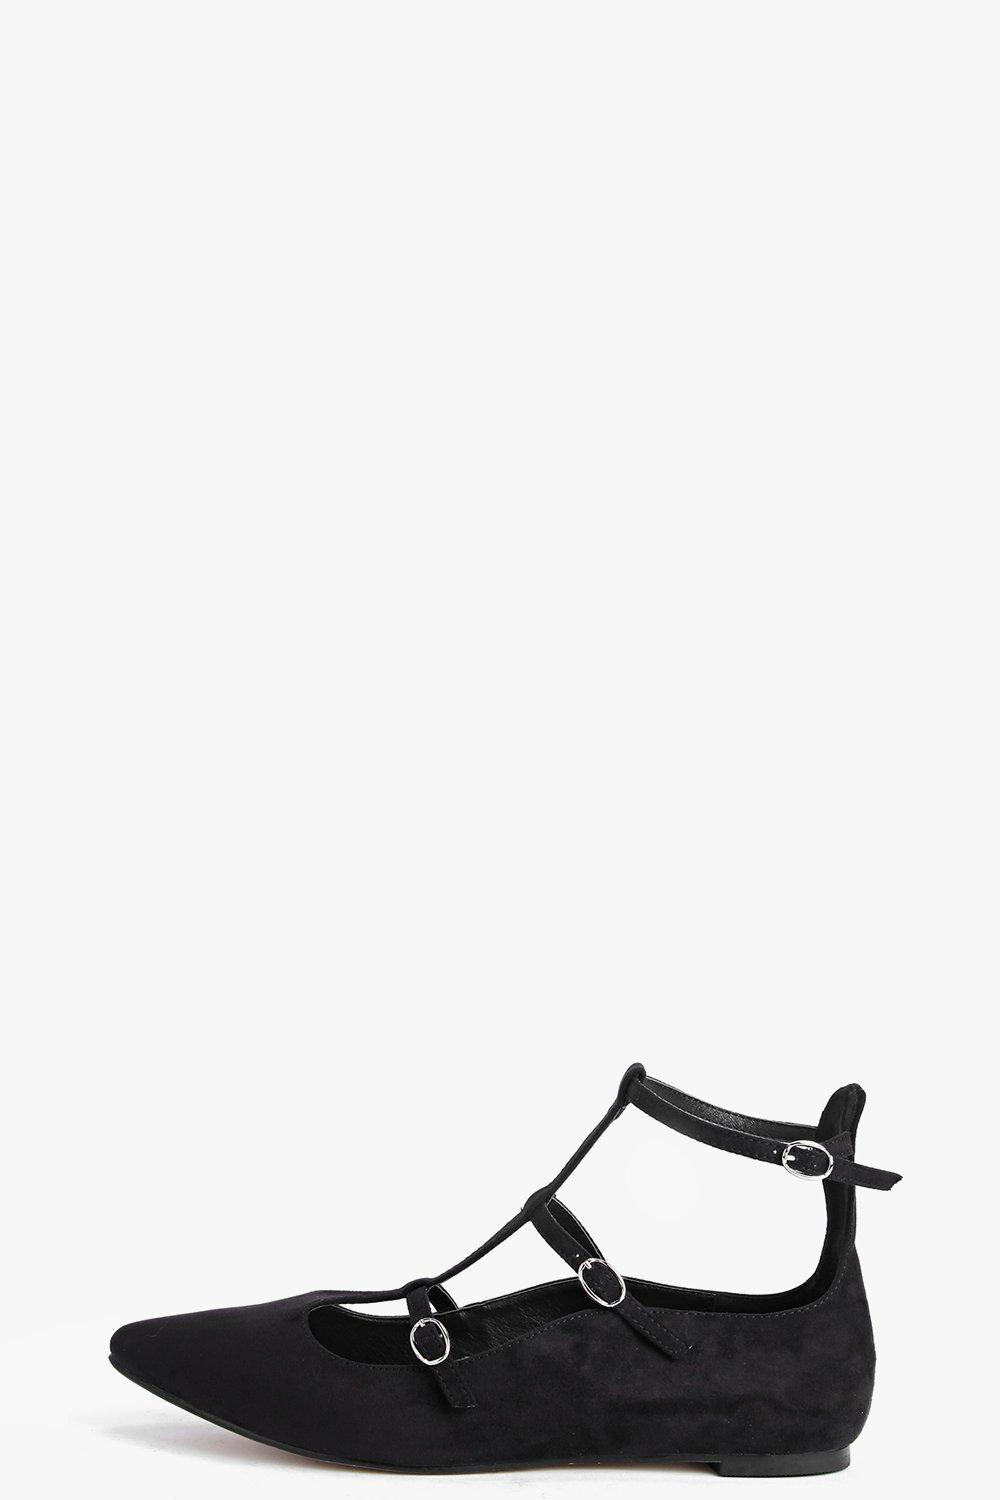 Anya Multi Strap And Buckle Ballet